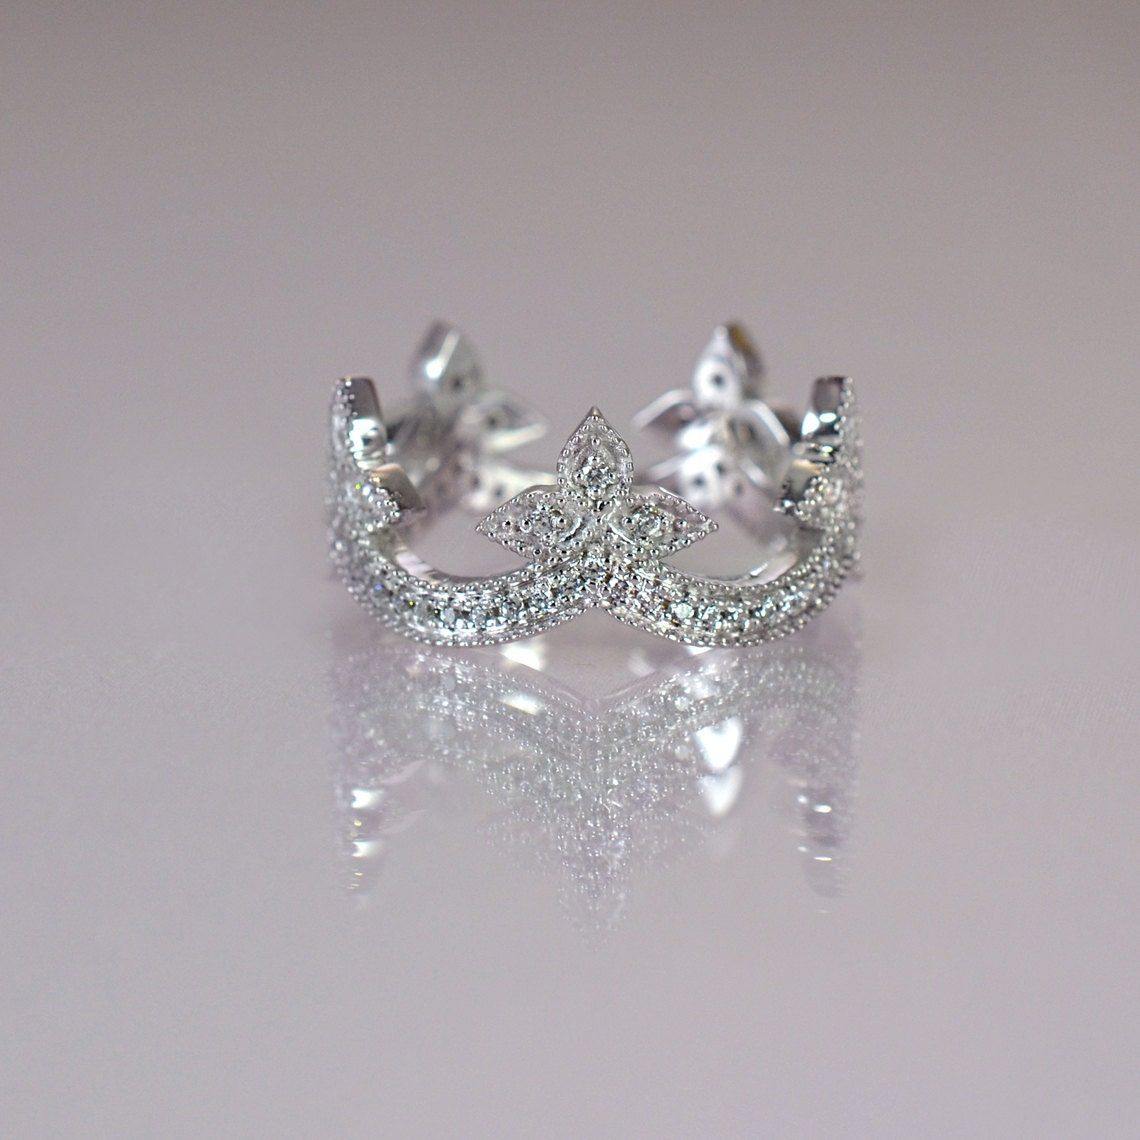 crown wedding band diamond engagement ringwhite gold tiara